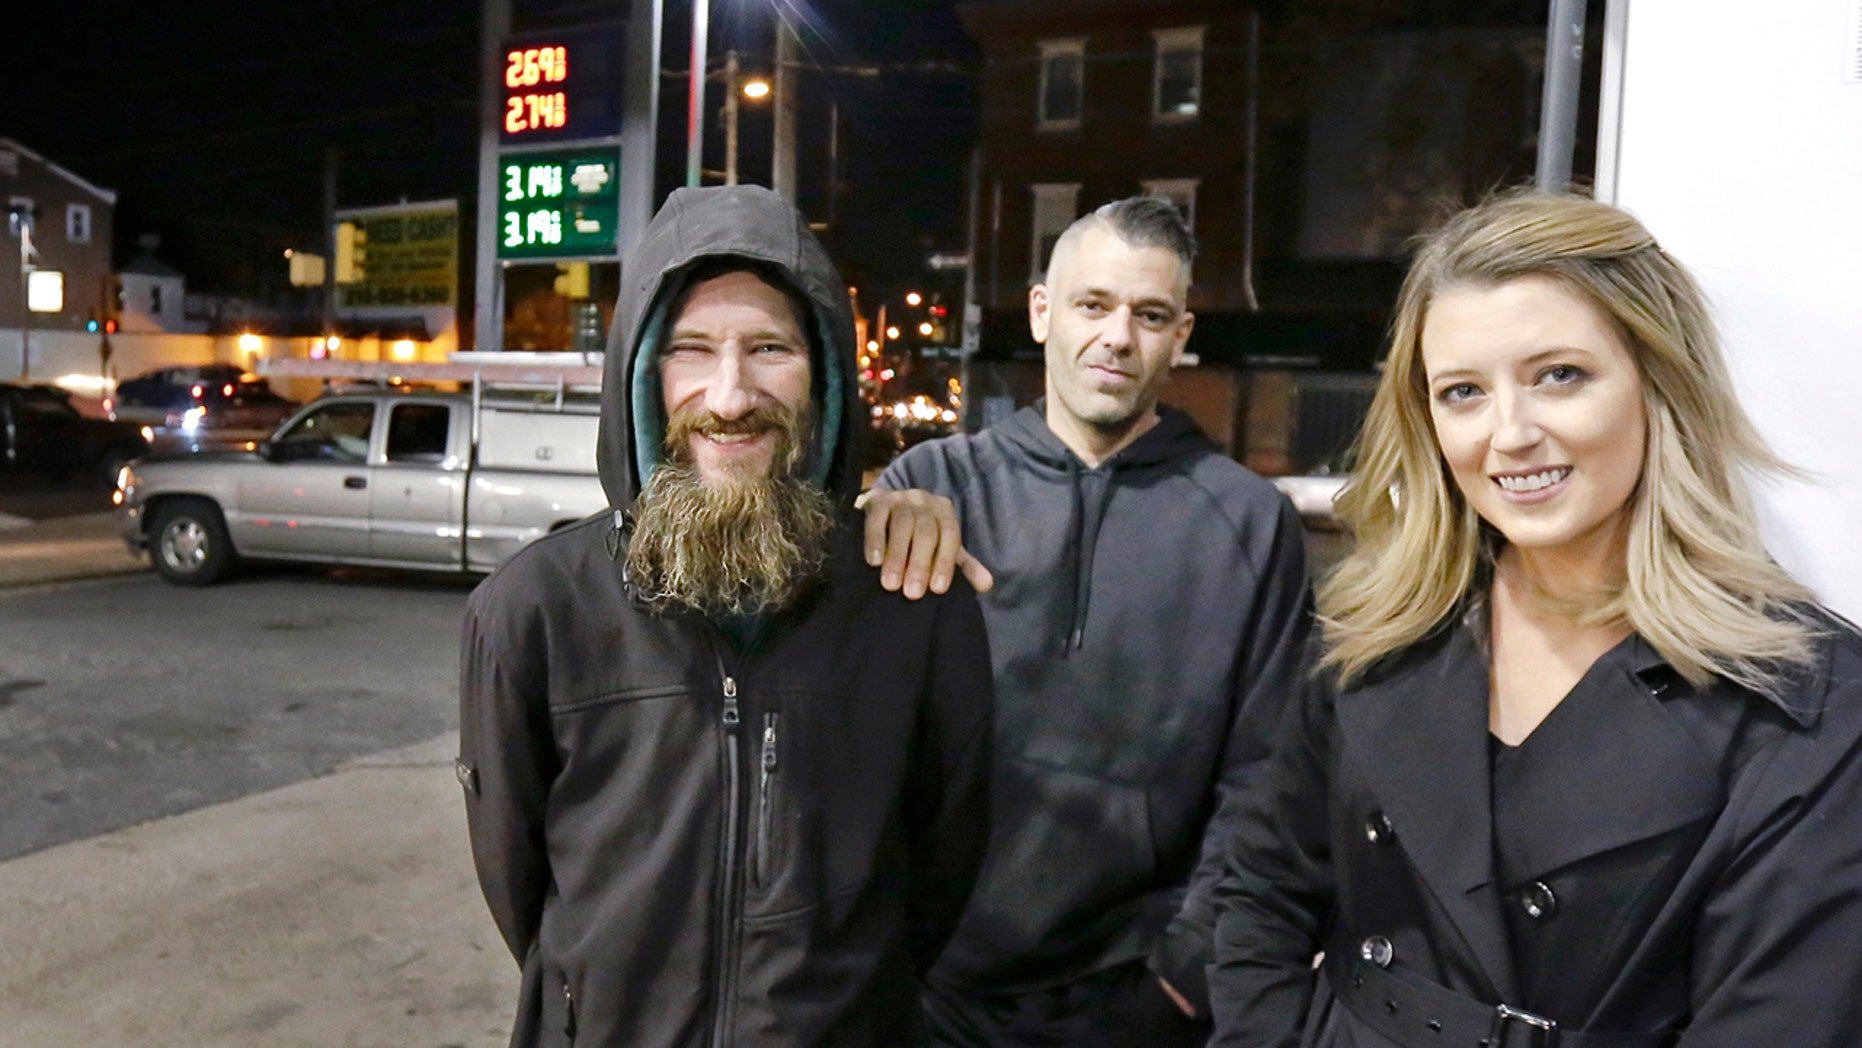 When McClure ran out of gas, Bobbitt, who is homeless, gave his last $20 to buy gas for her.